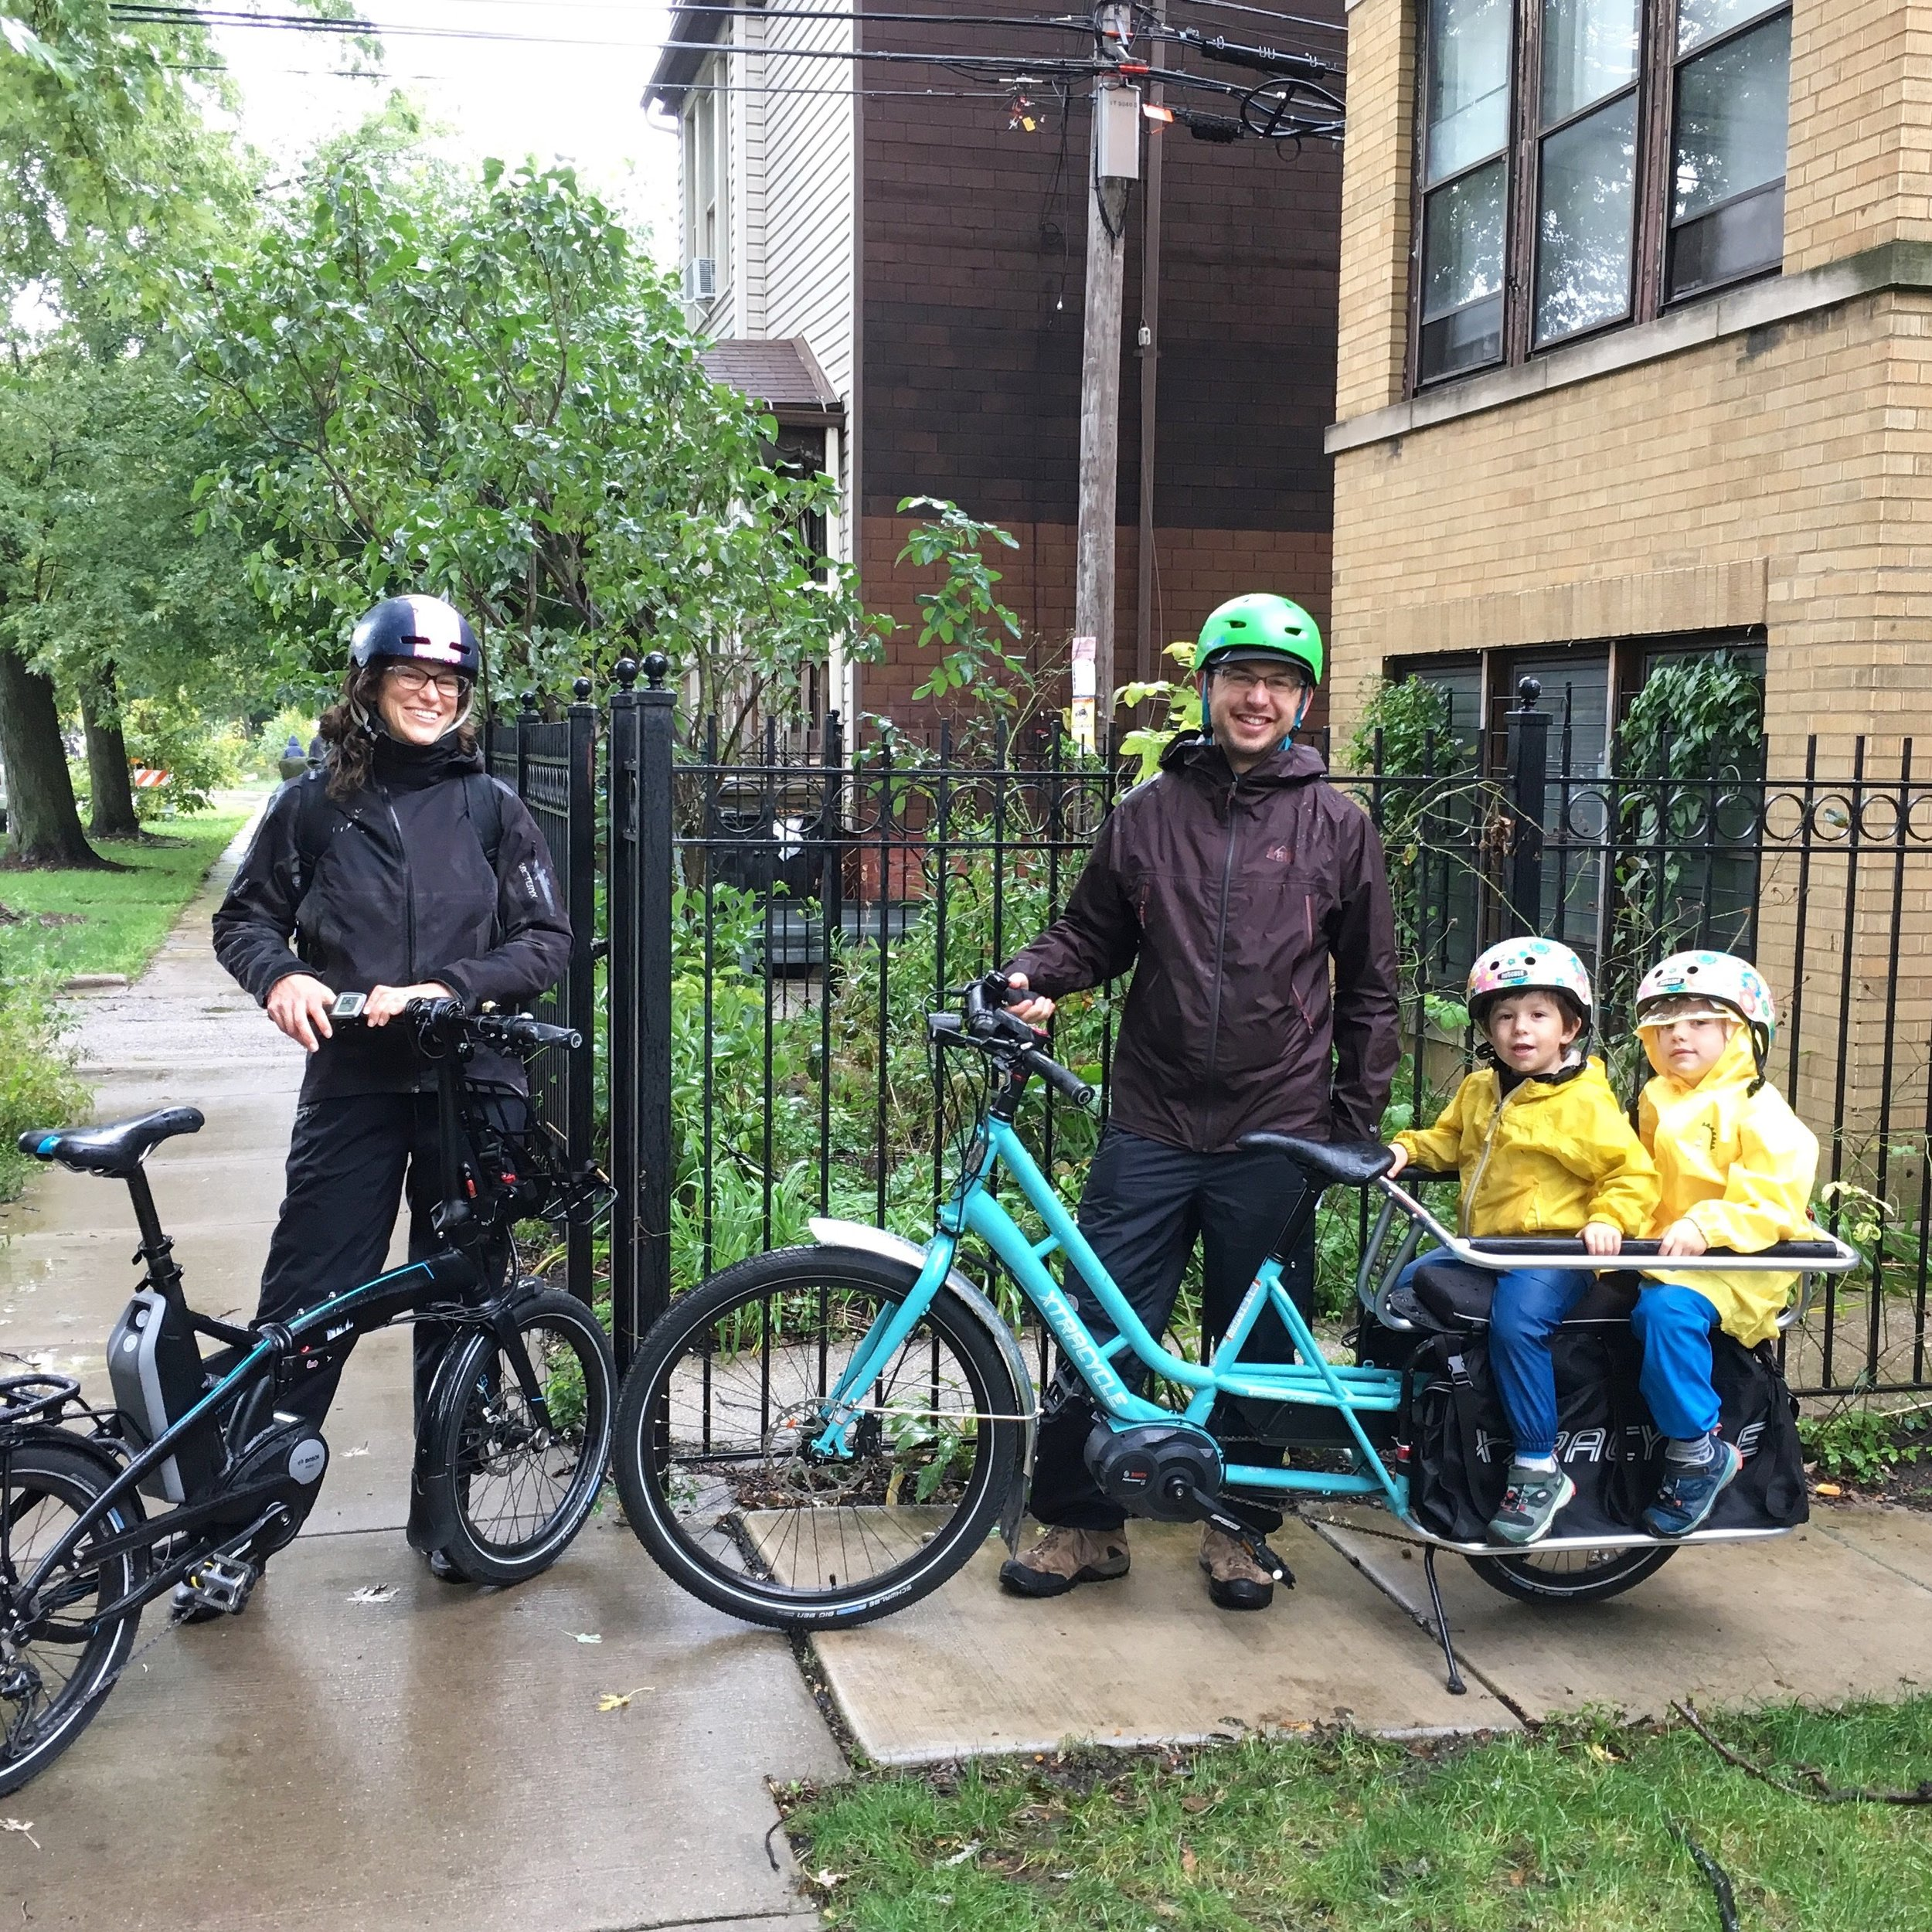 Sunday, Parker Thompson, his kiddos and I borrowed these awesome ebikes from the fantastic  Four Star Family Cyclery  in Chicago. We rode them to a very sweet kidical mass.